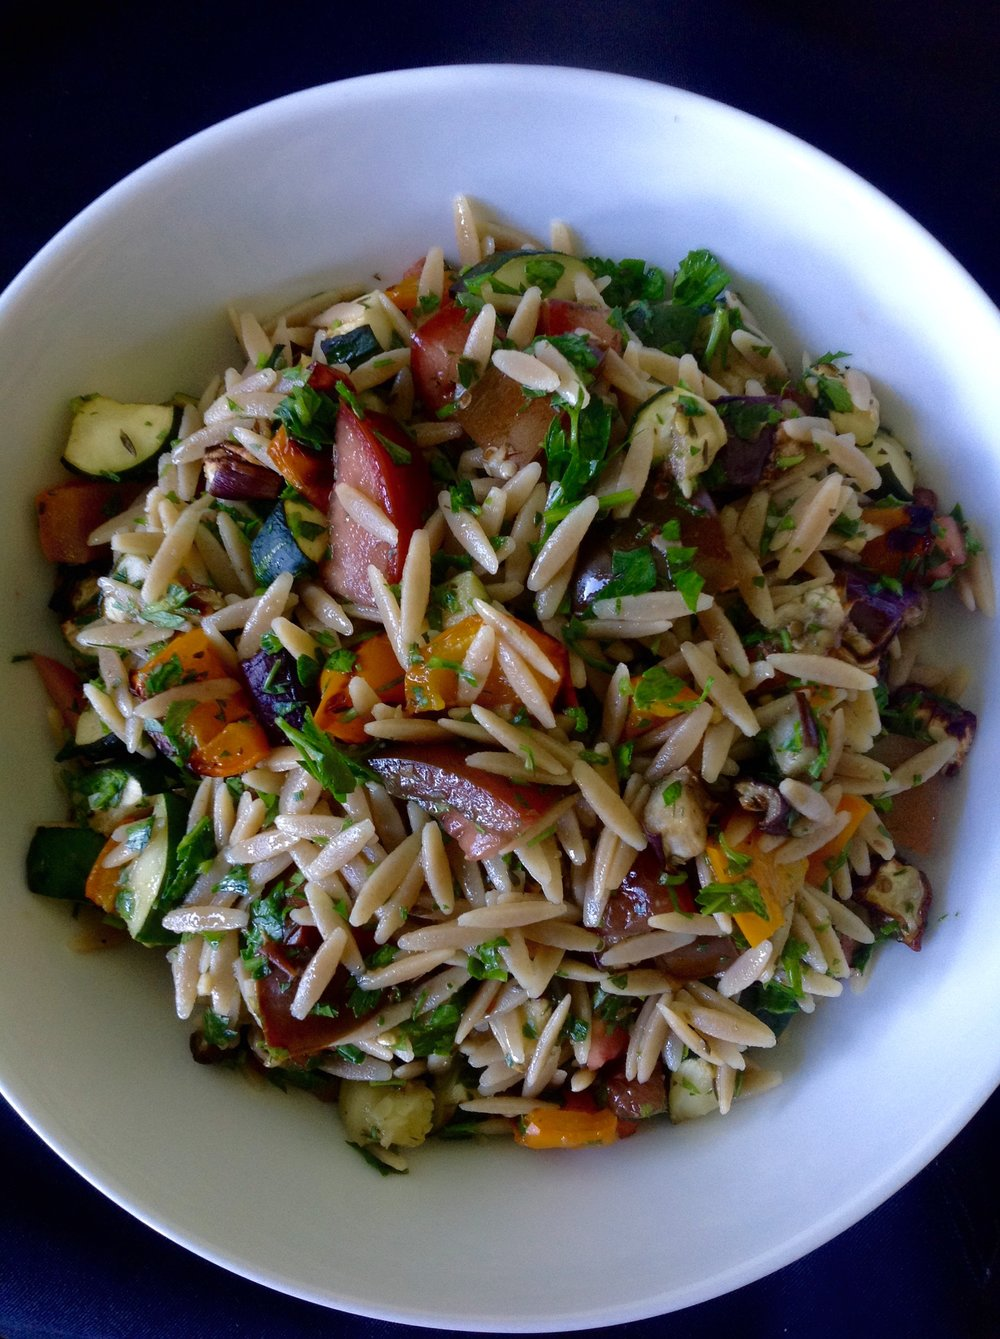 Whole Wheat Orzo Ratatouille - Healthy, Whole Grain, Pasta Salad, Oil-Free, Plant-Based, Vegan.JPG